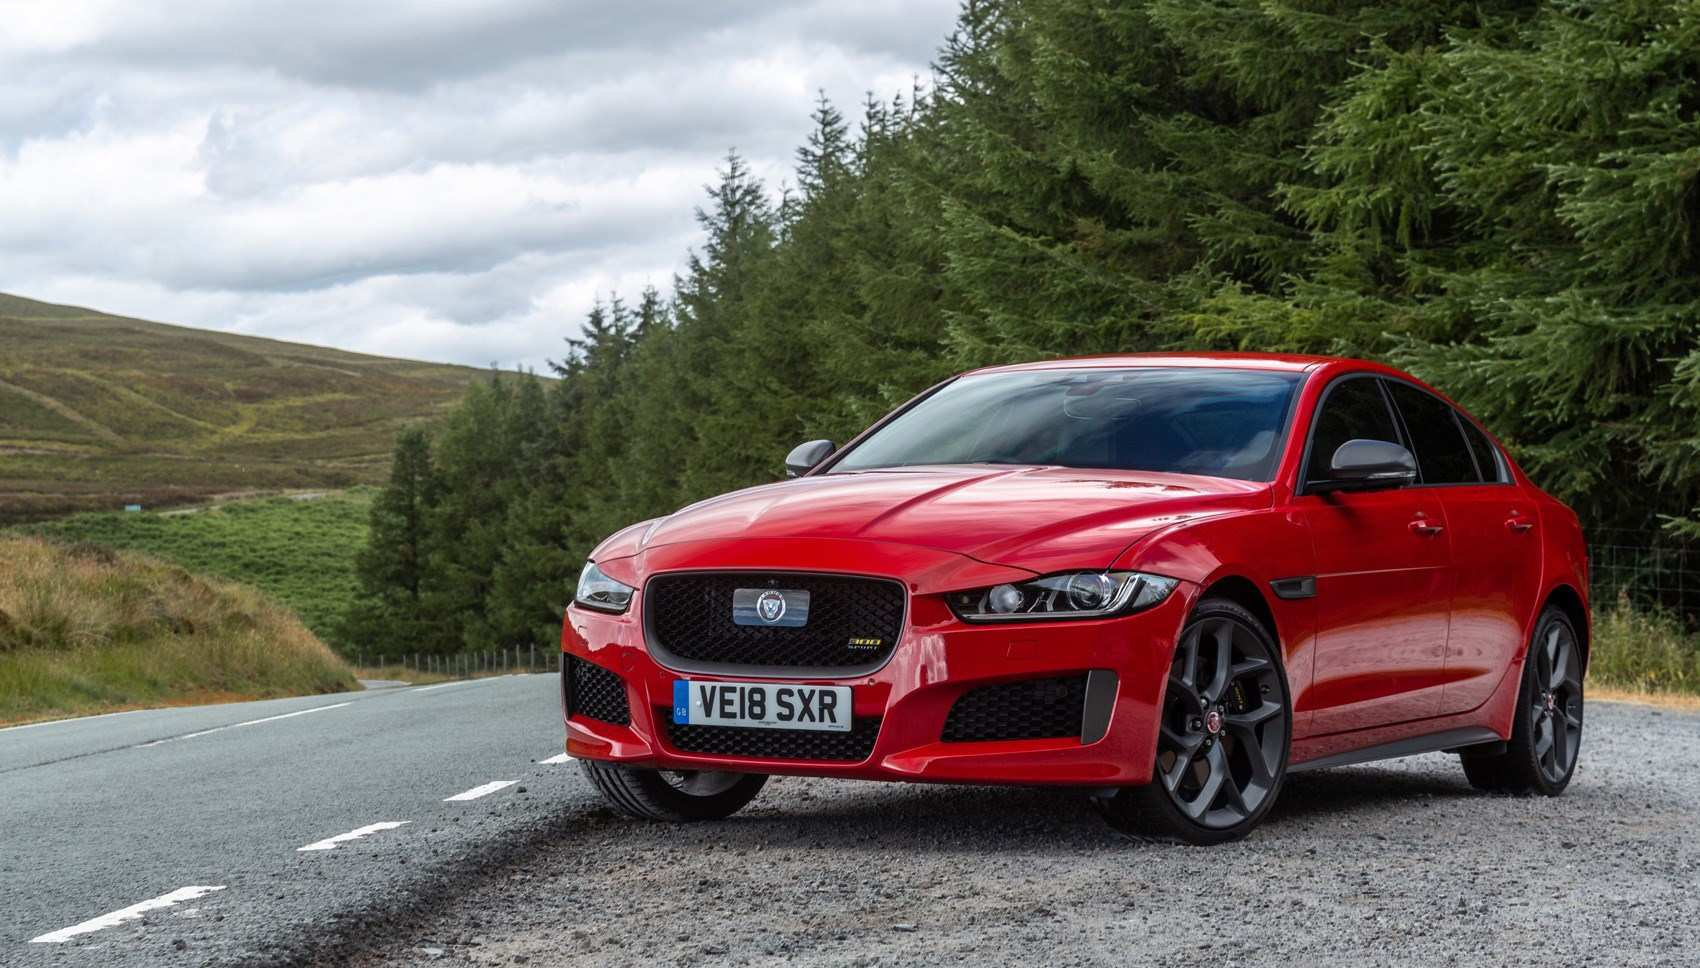 47 Concept of Jaguar Xe May 2020 First Drive for Jaguar Xe May 2020